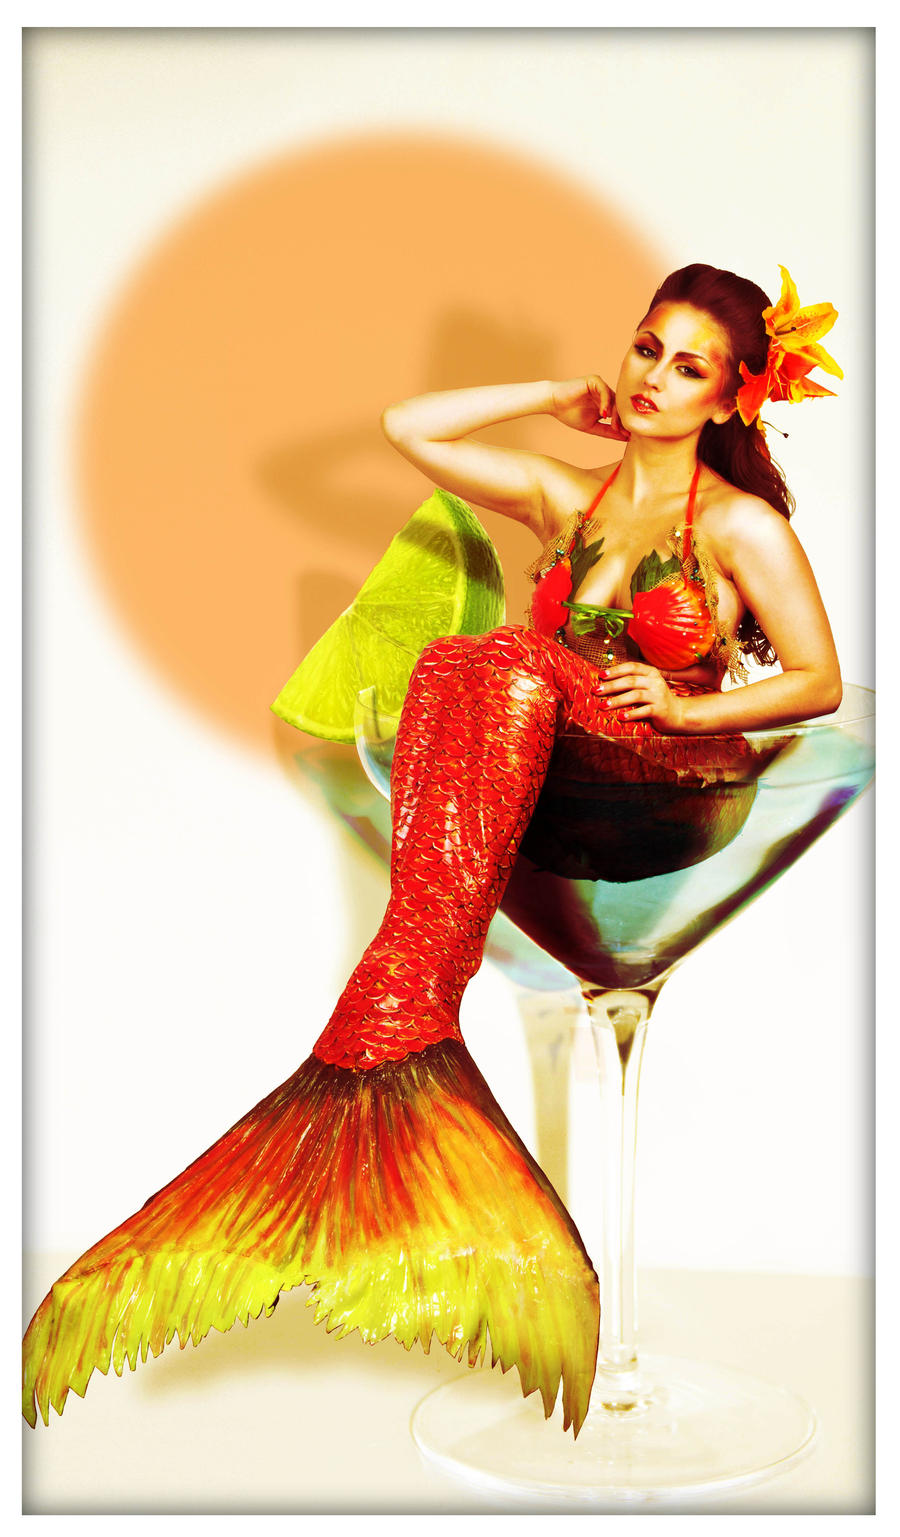 pin up mermaid by Monsieur-T on DeviantArt